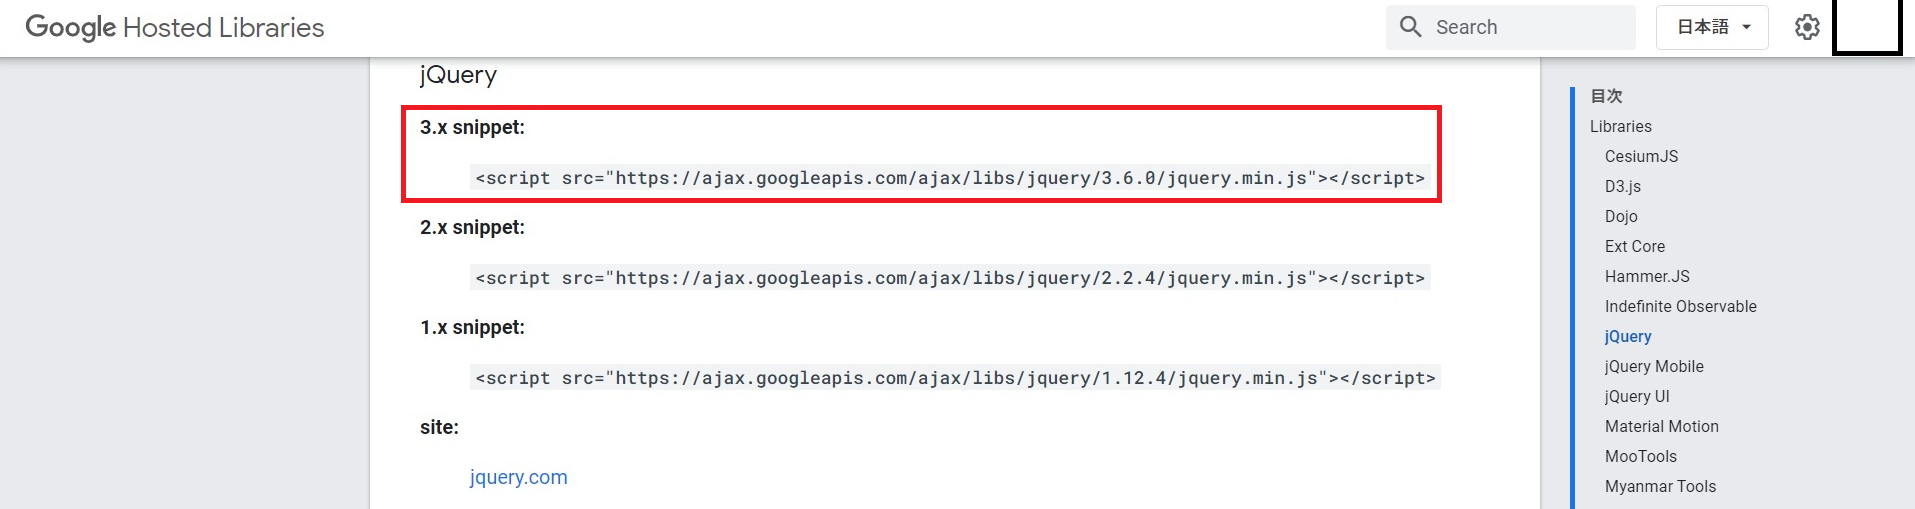 Google Hosted LibrariesのjQuery